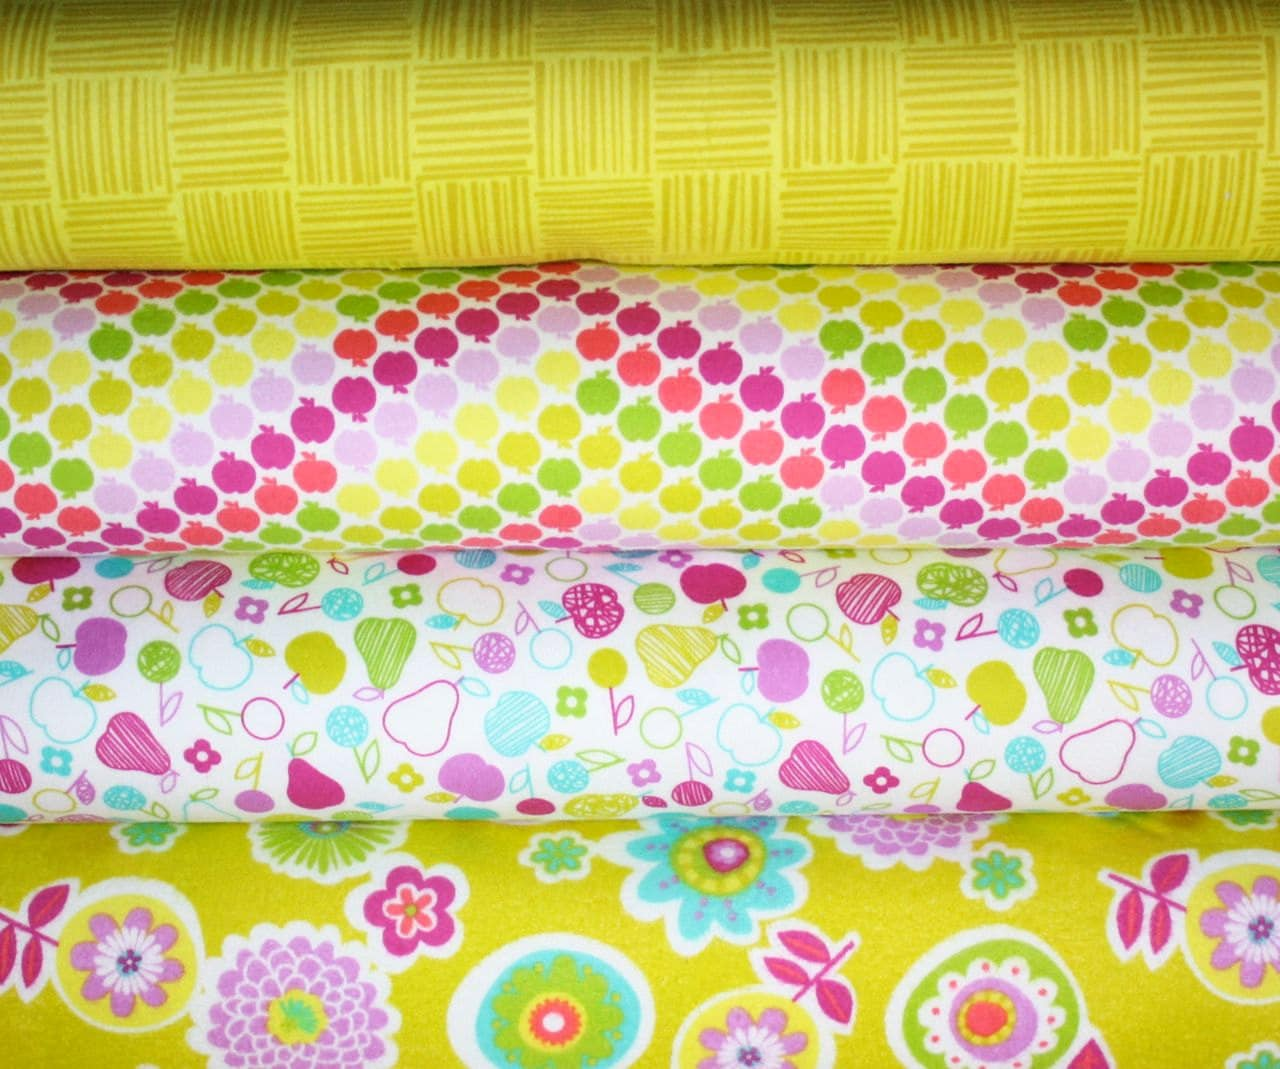 Flannel Greenhouse fabric by Erin McMorris for Free spirit, Fat Quarter Bundle- 4 total